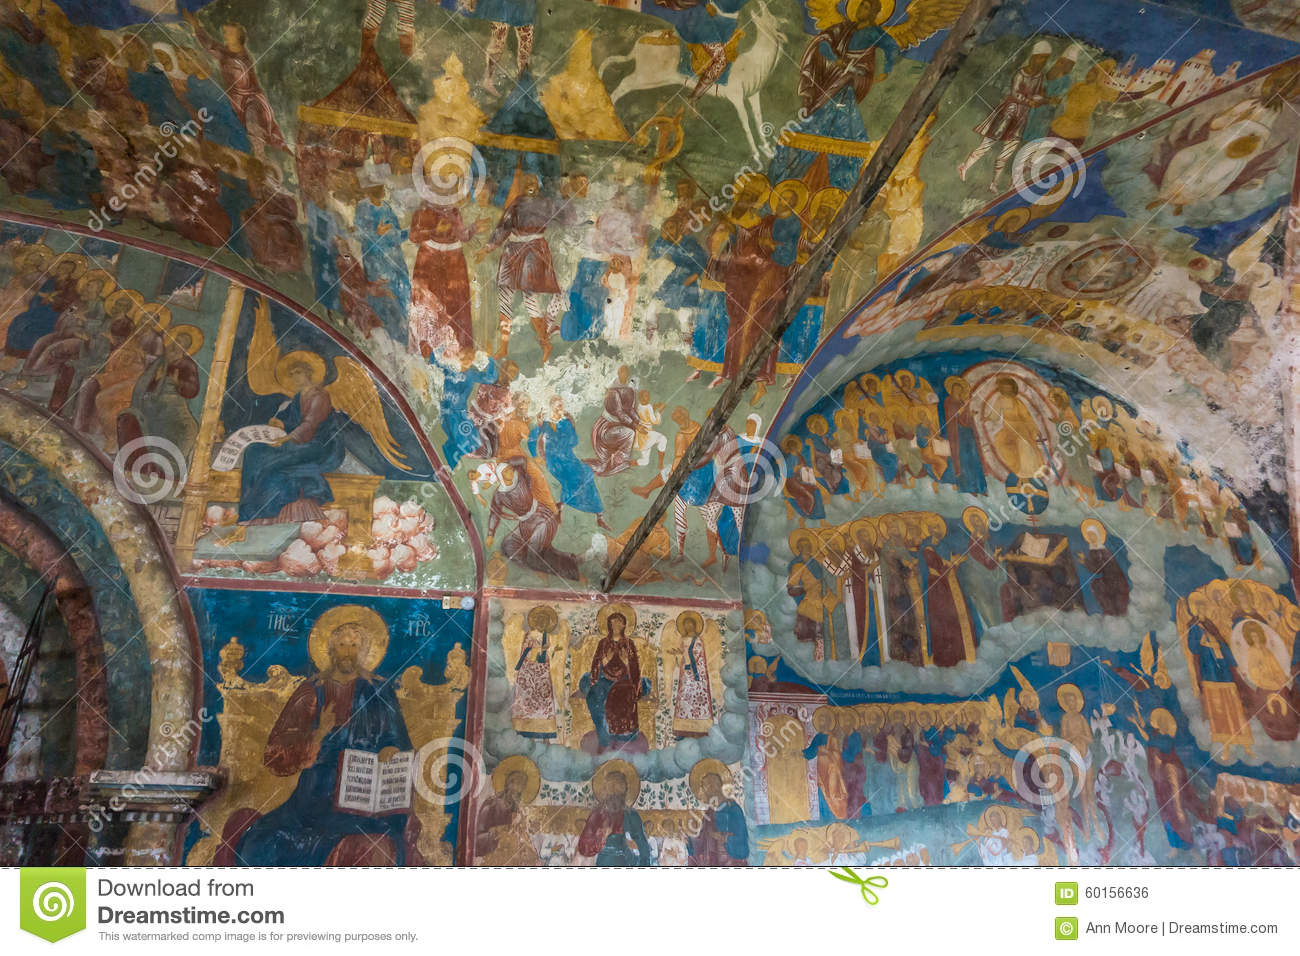 Historic Religious Fresco Paintings On Ceiling Of The Entrance.